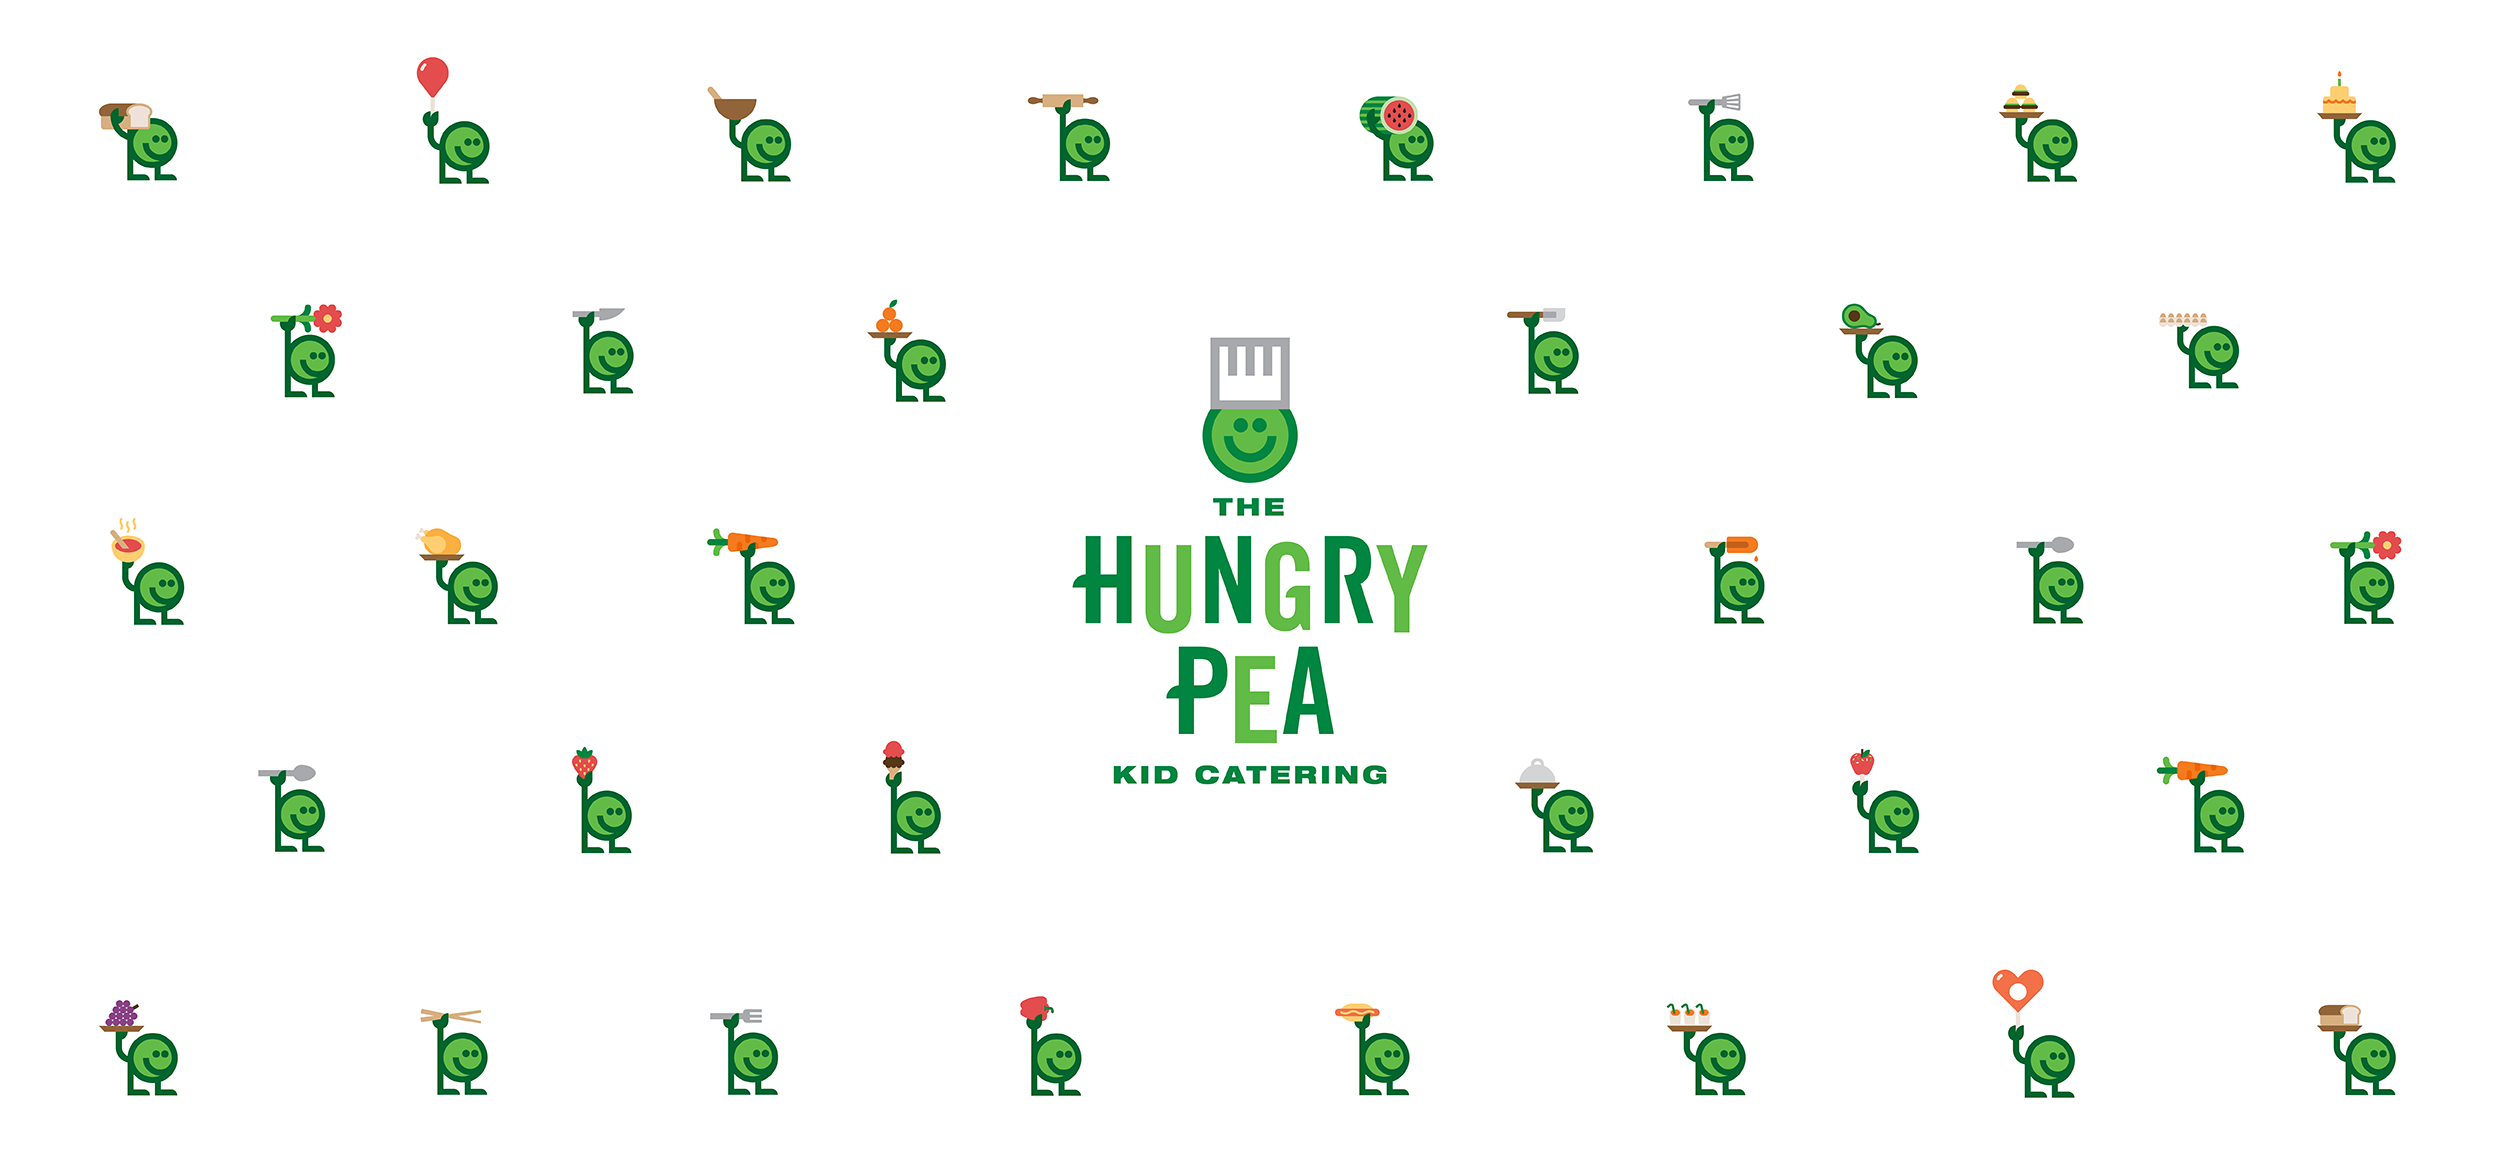 HP_HEADER_3_KID_CATERING_2500x1165.png